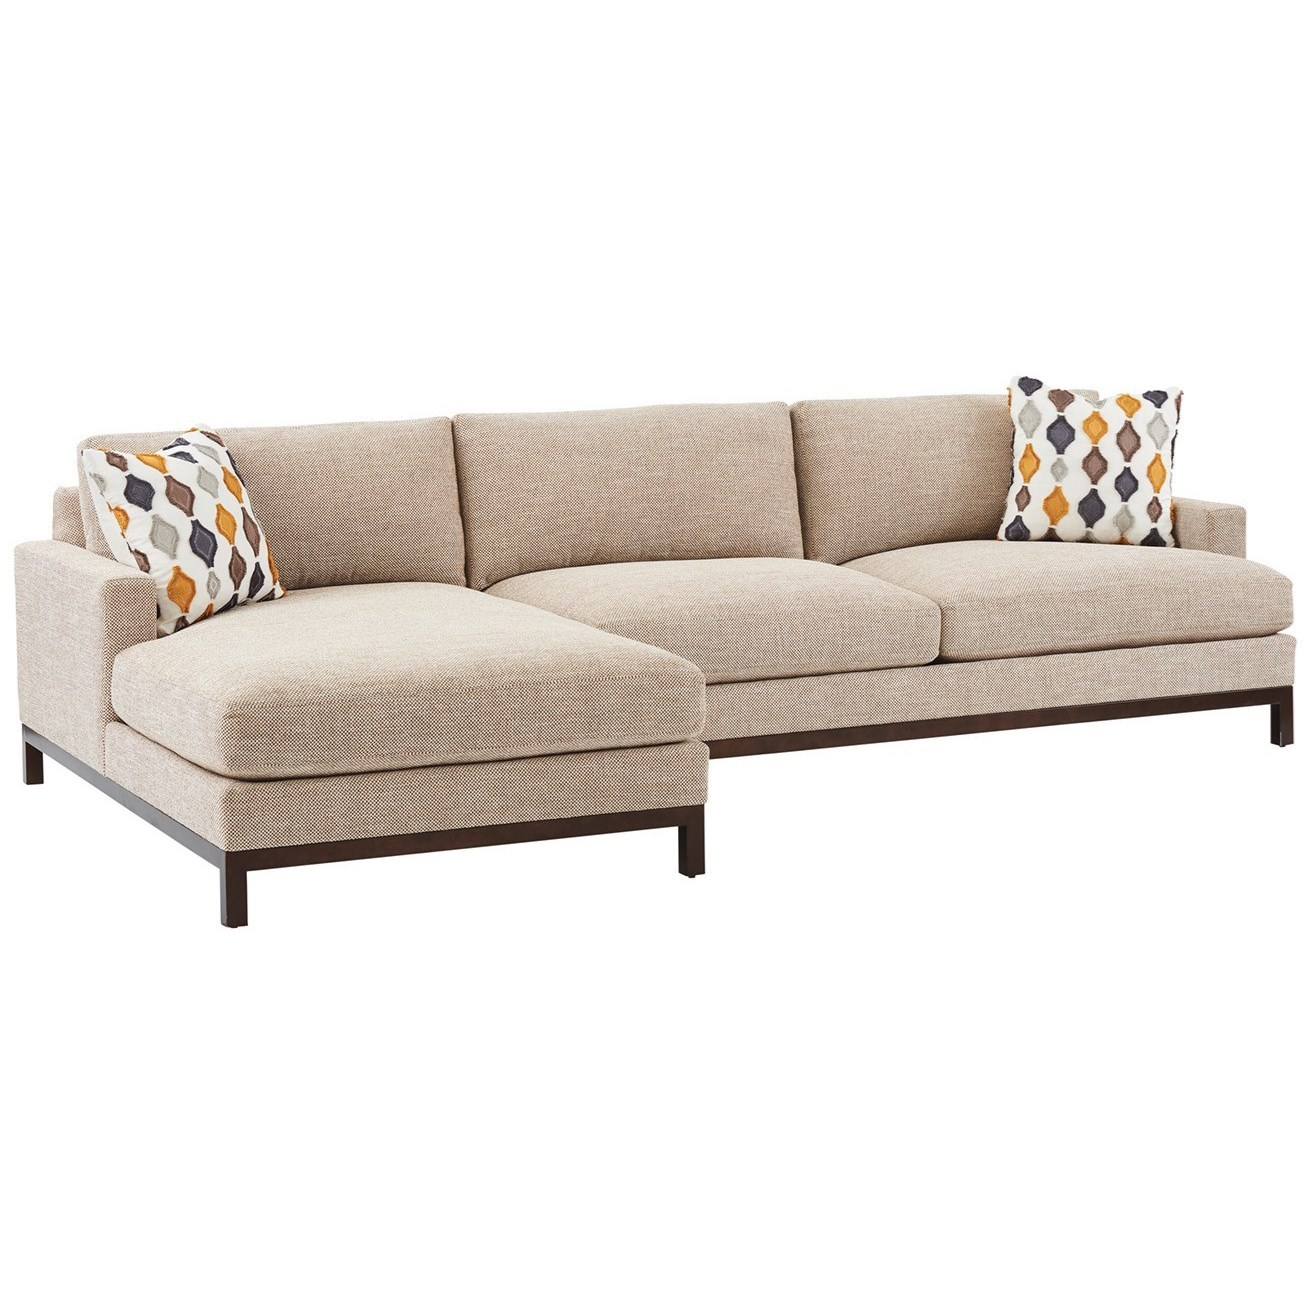 Barclay Butera Upholstery 2-Pc Sectional w/ Bronze Base & LAF Chaise by Barclay Butera at Baer's Furniture